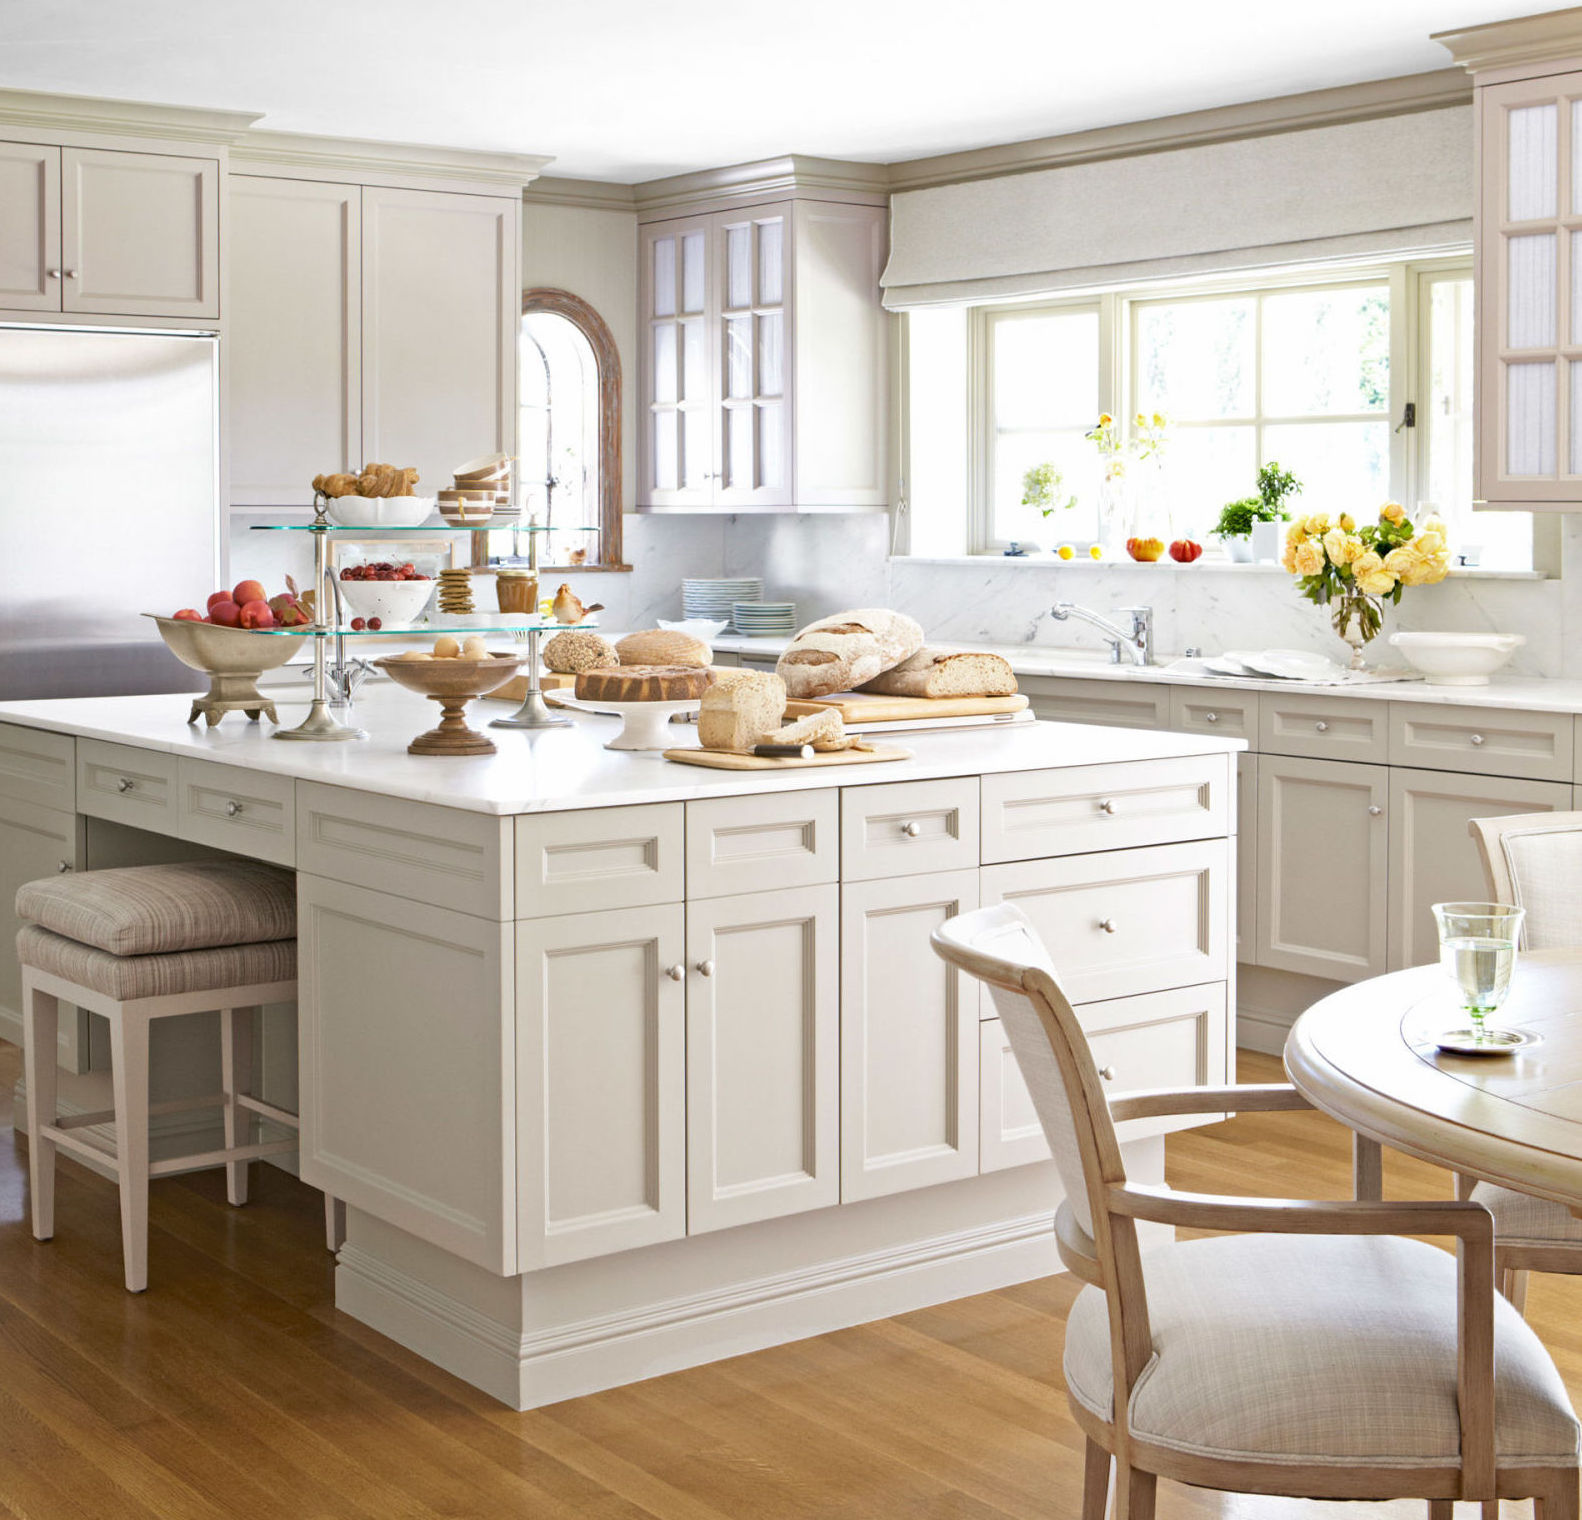 Pale Neutral Kitchens Atticmag - Pale grey kitchen units